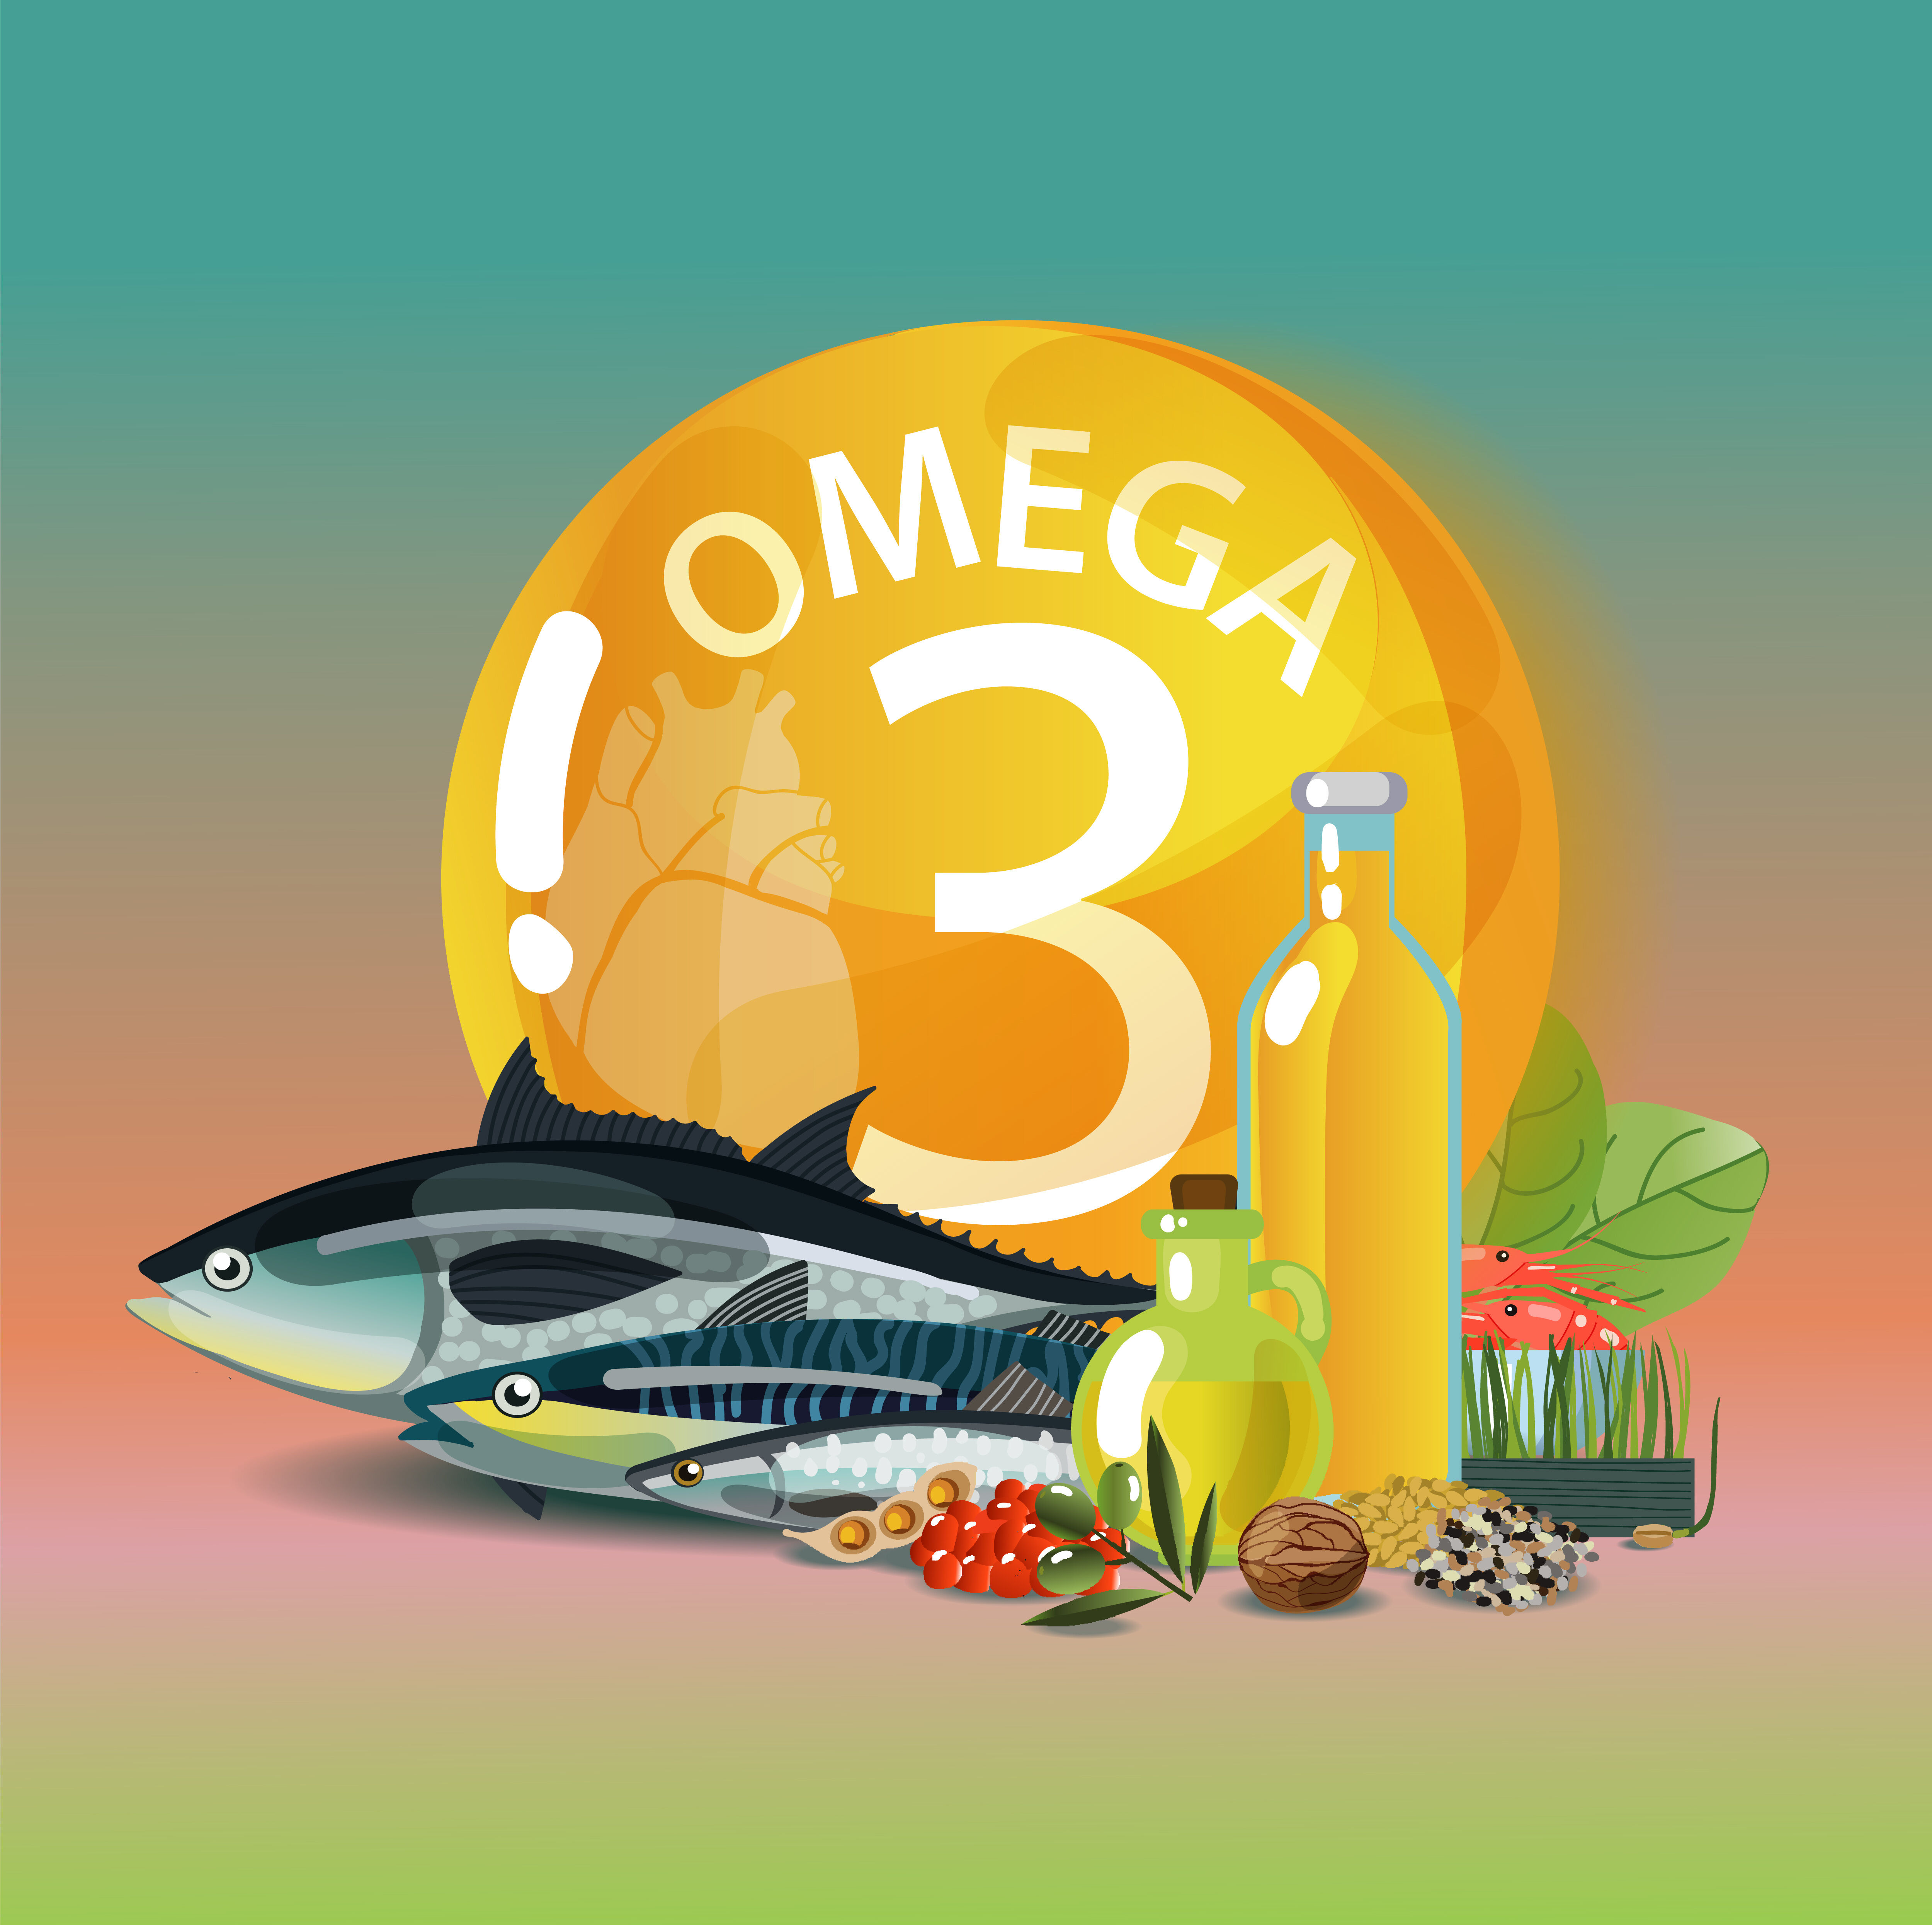 Omega-3 is for proper functioning